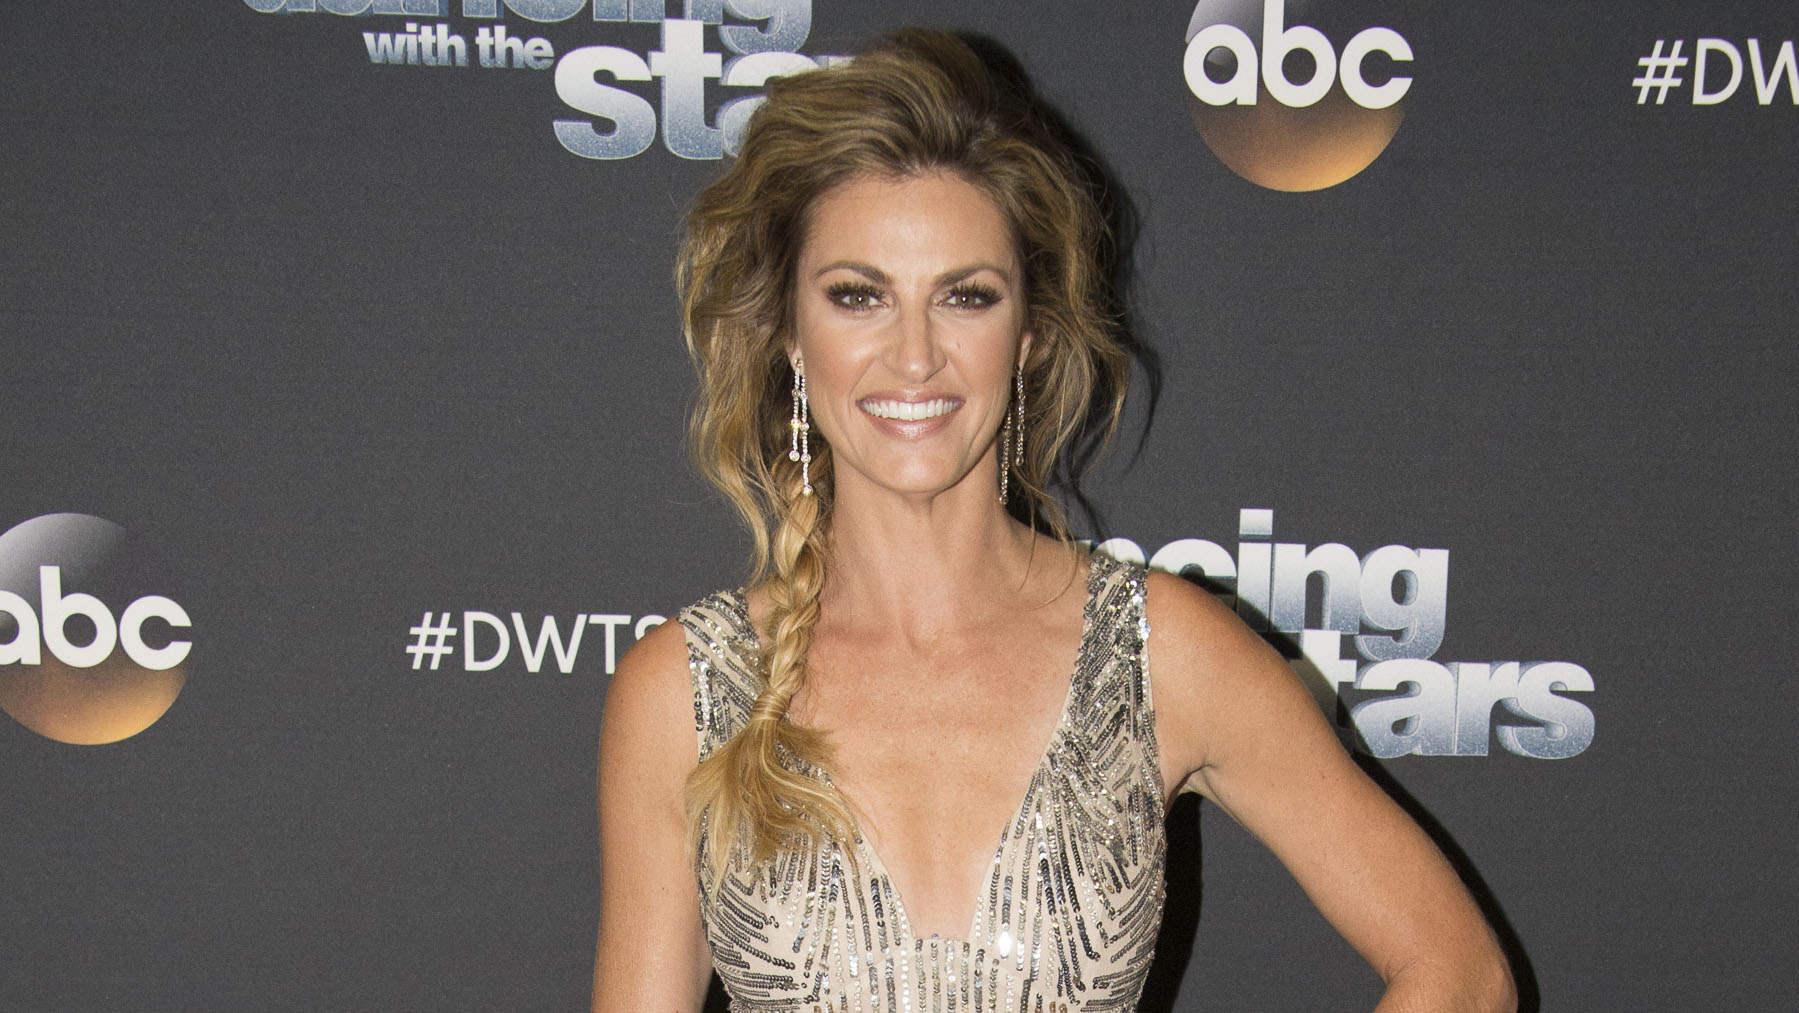 Erin Andrews Reveals Her Cervical Cancer Battle Strengthened Her Marriage to Jarrett Stoll: 'He Was Amazing'